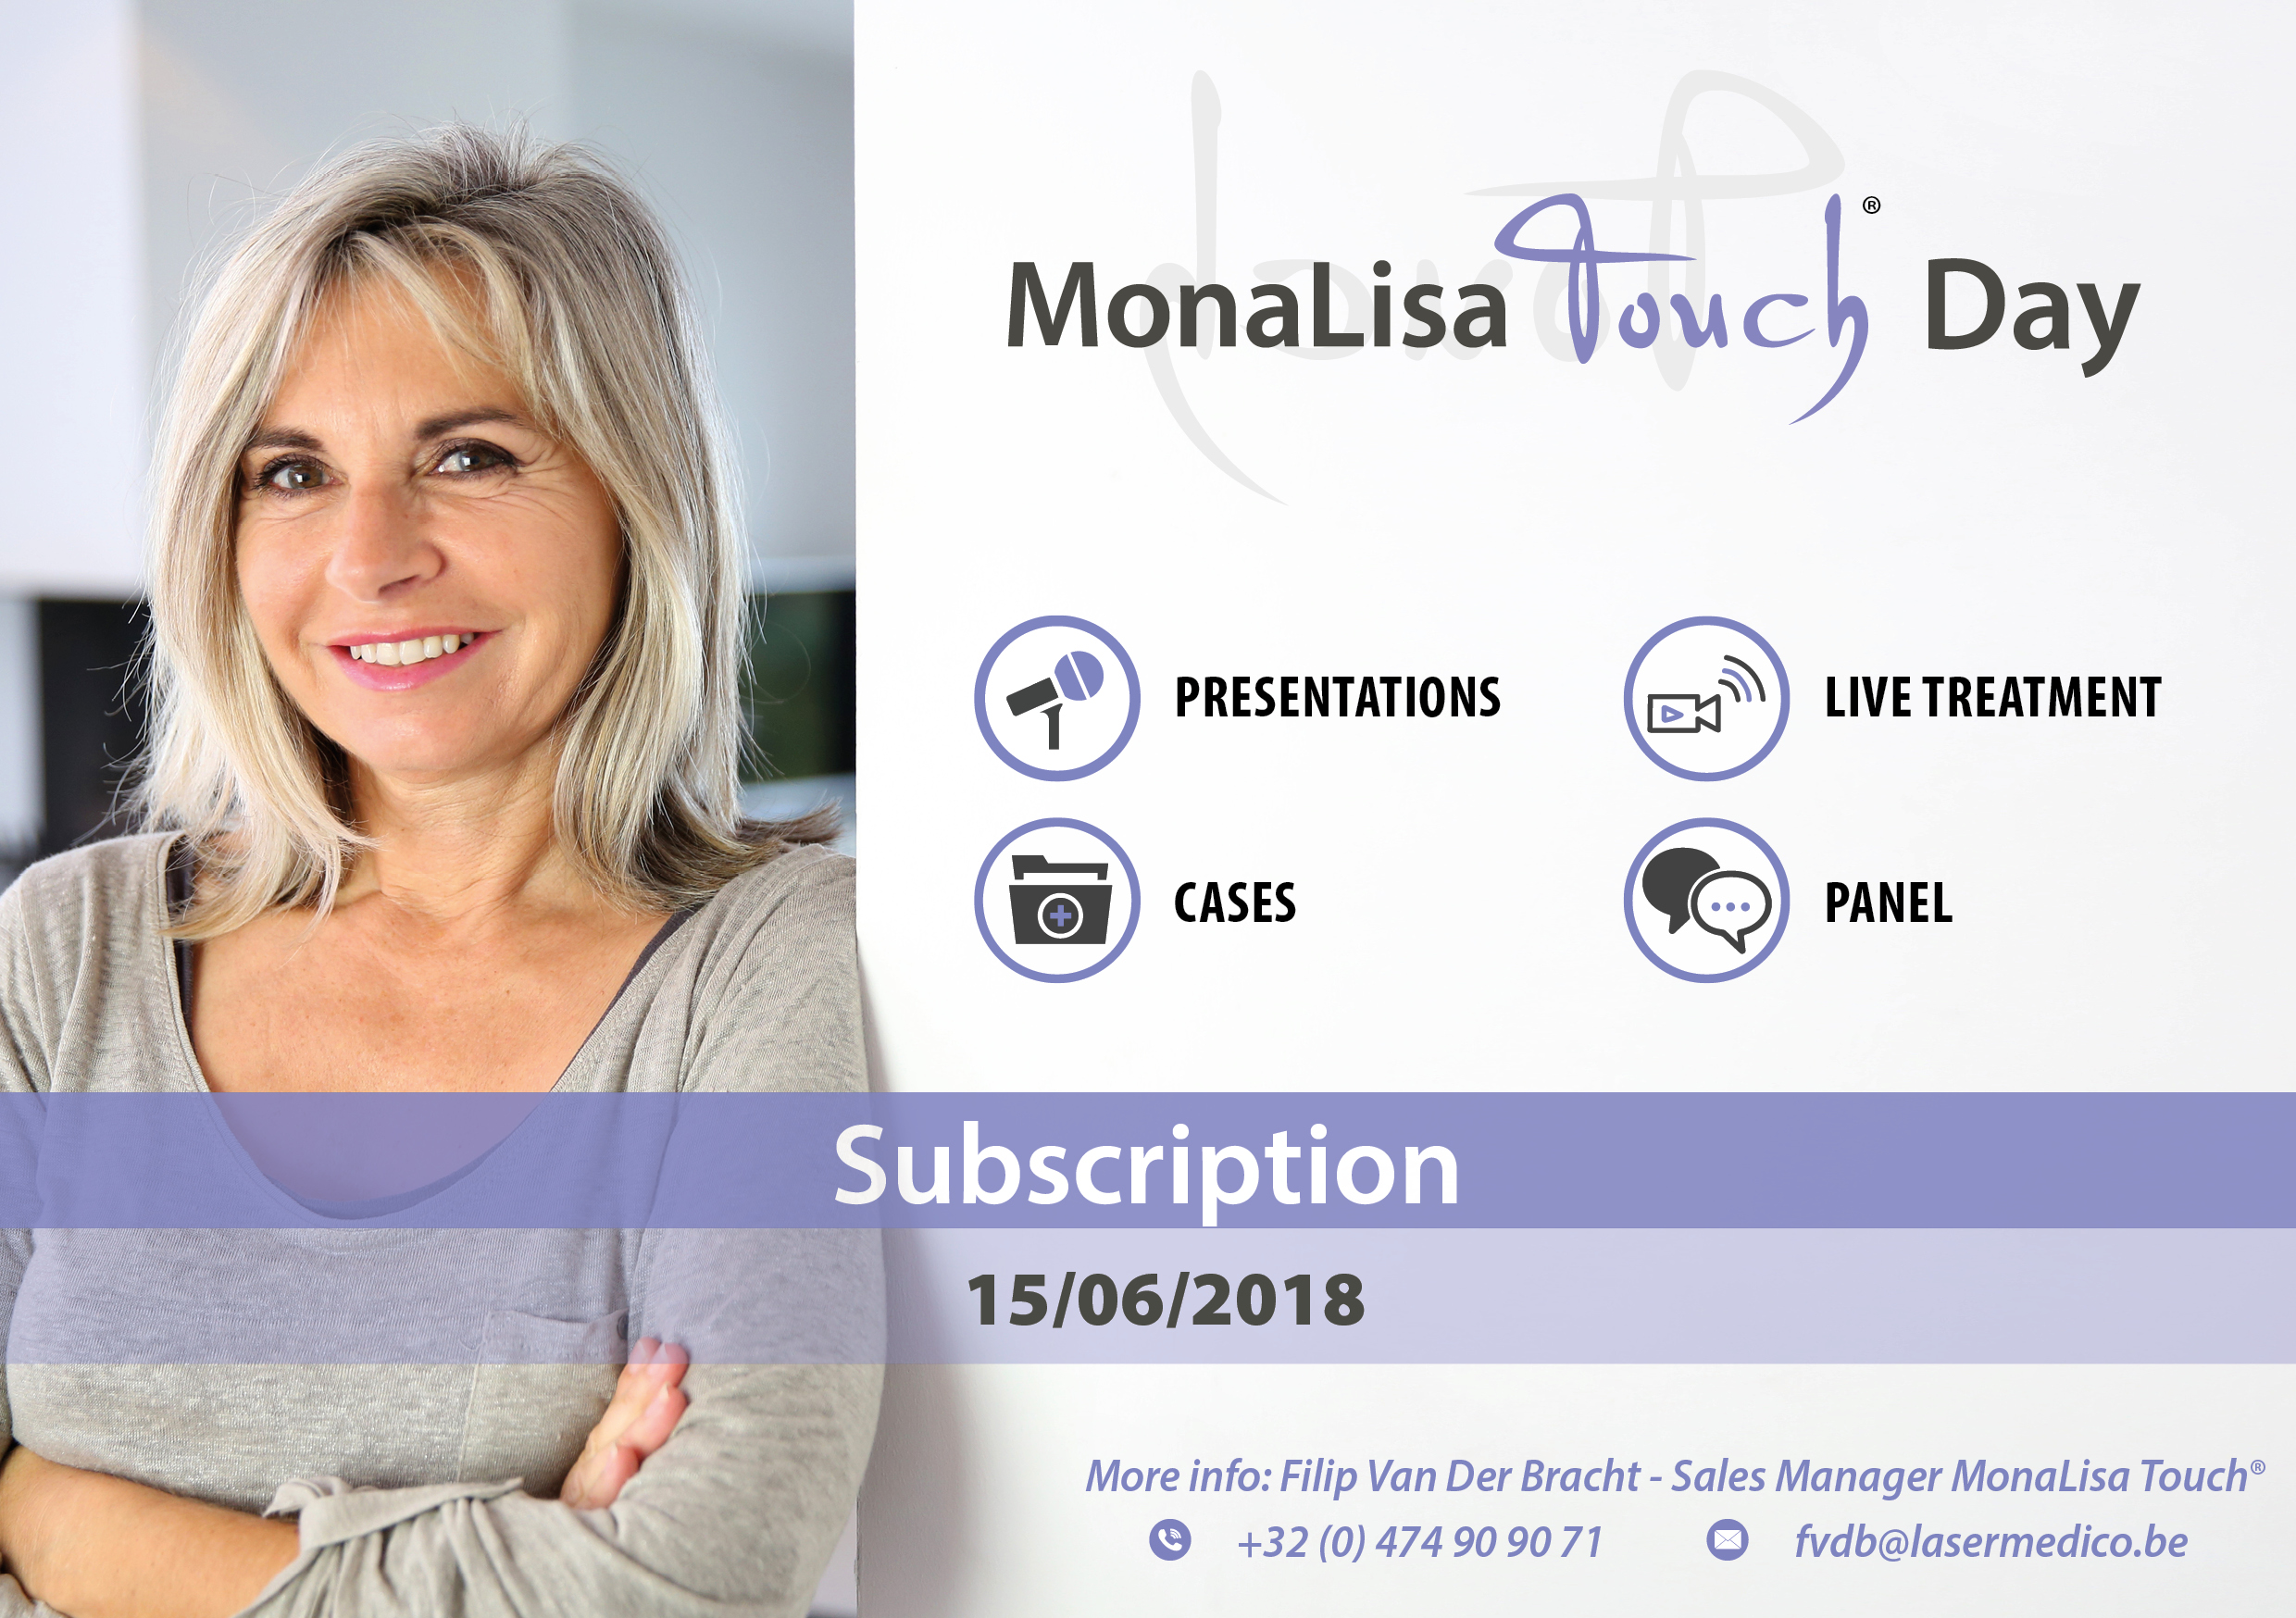 MONALISA TOUCH DAY